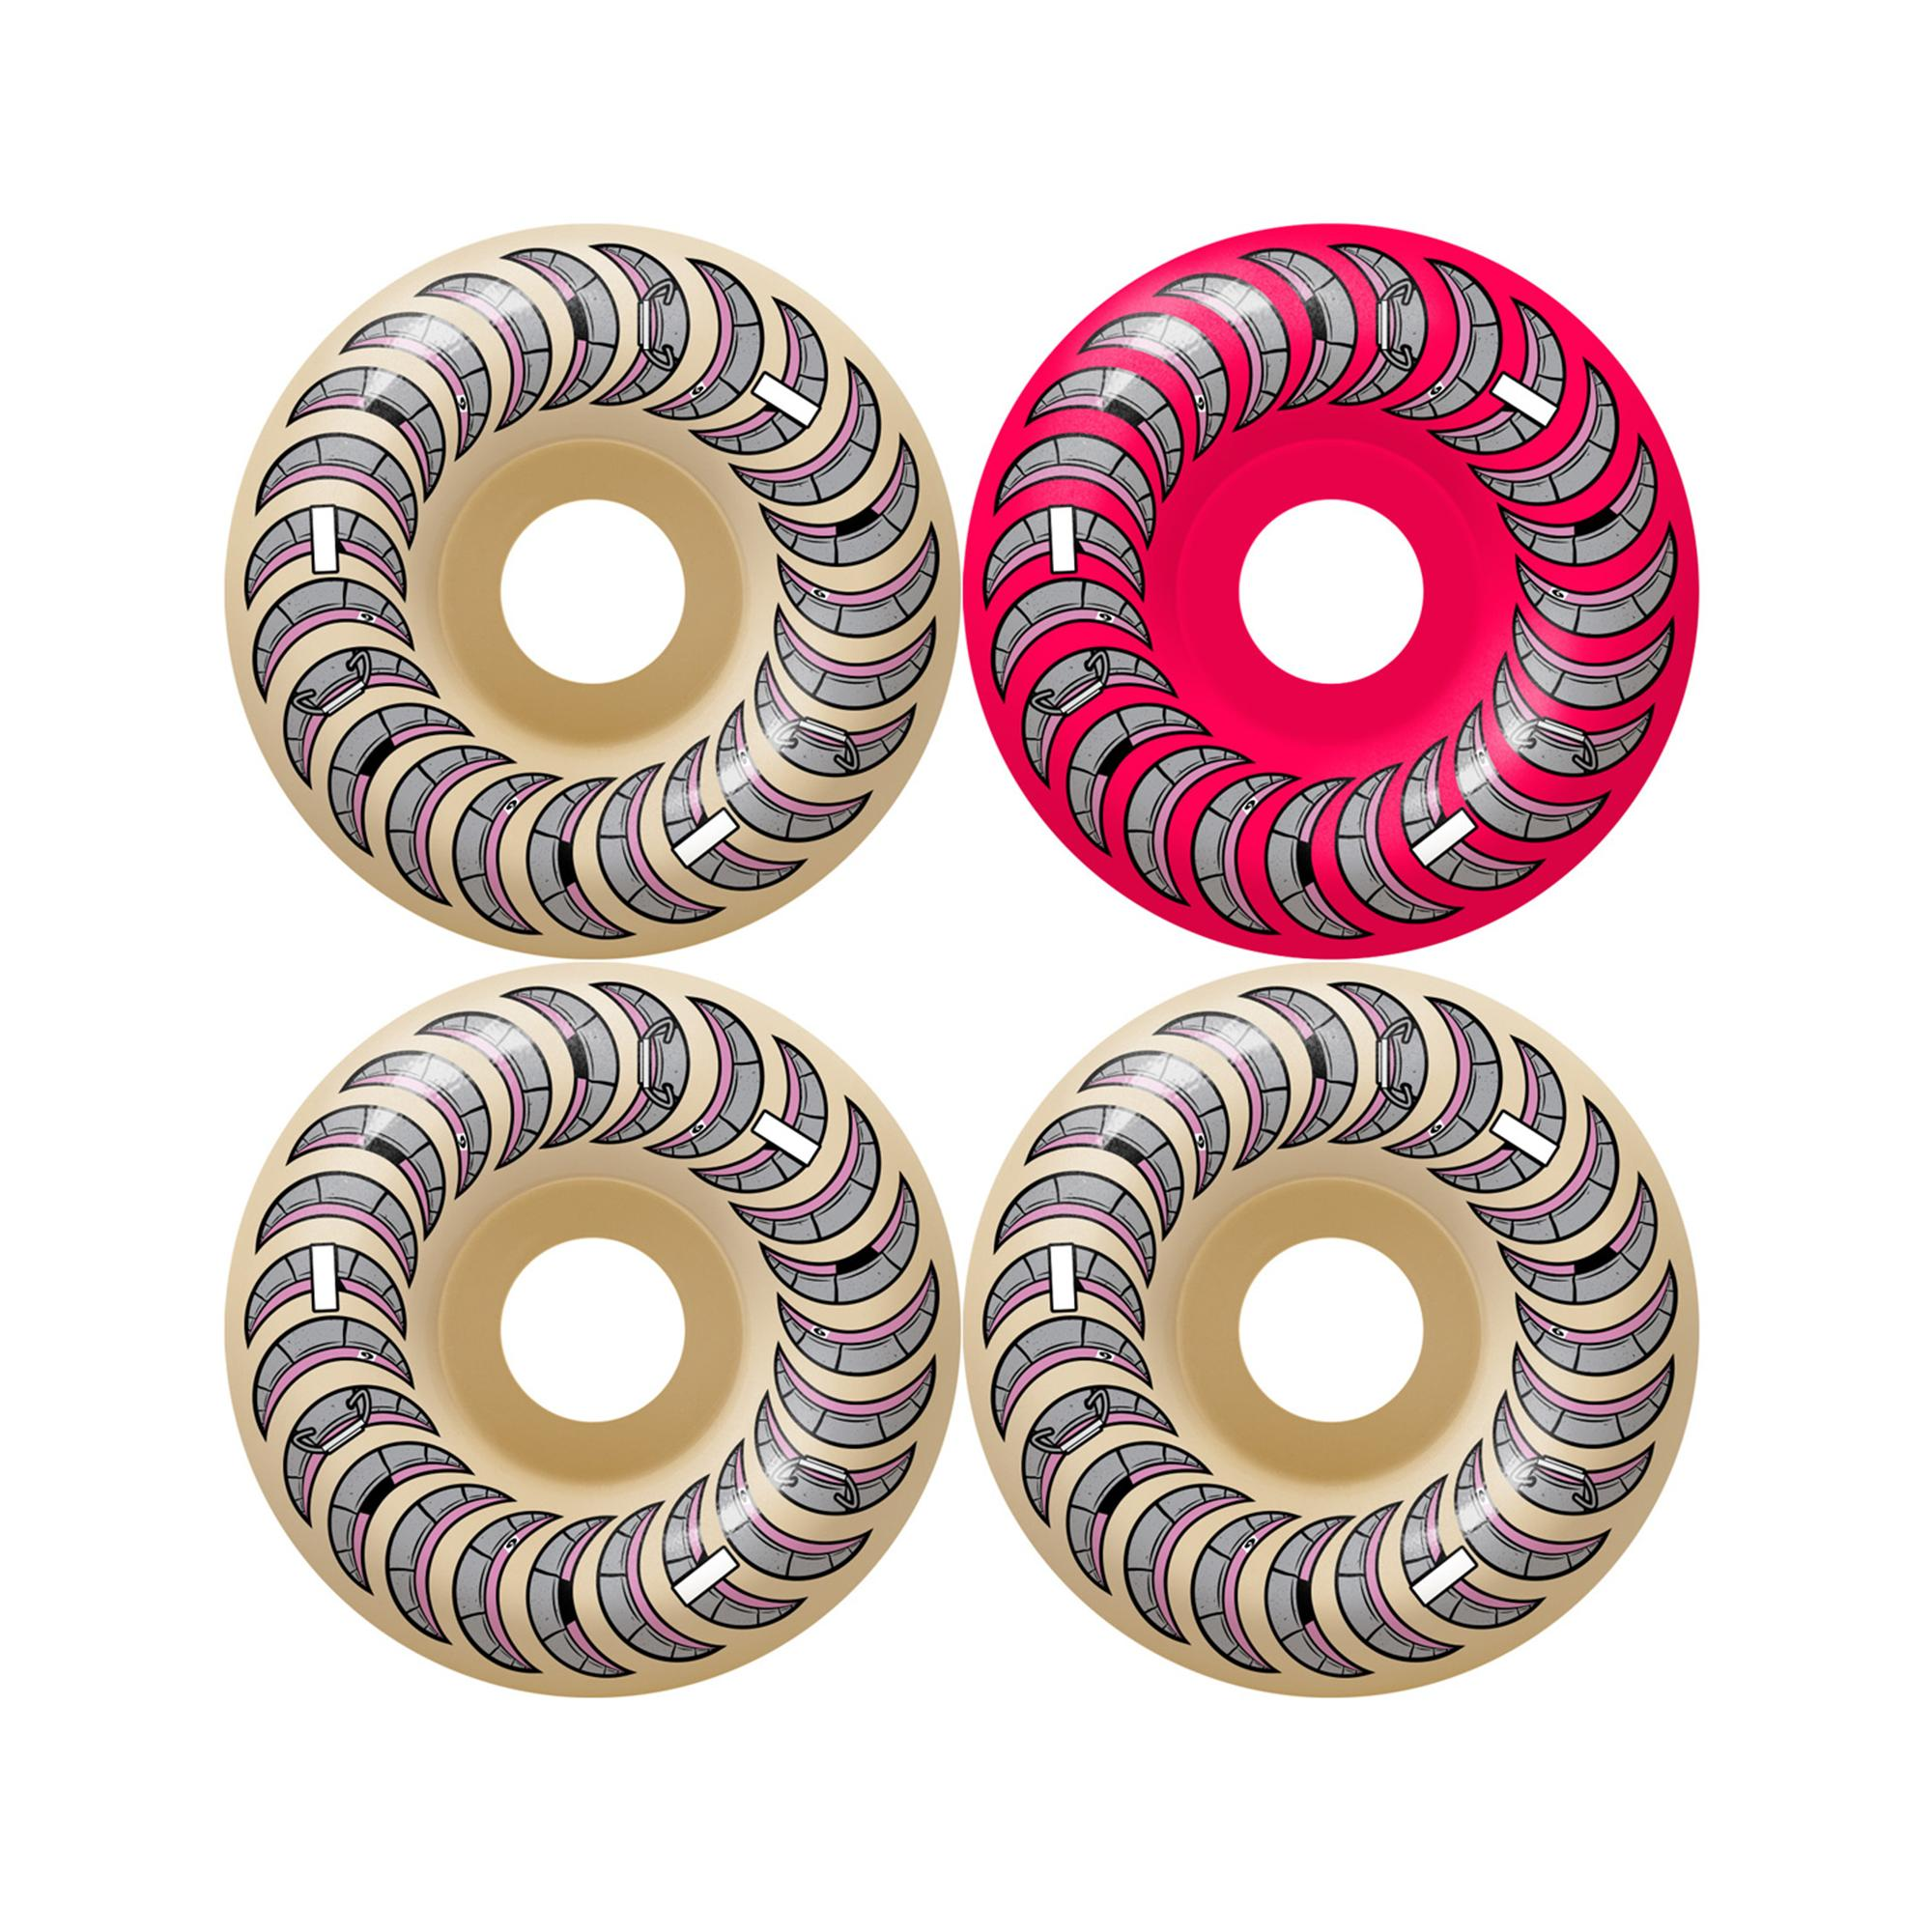 Spitfire Formula Four Classic Full 99 Wheels Product Photo #3